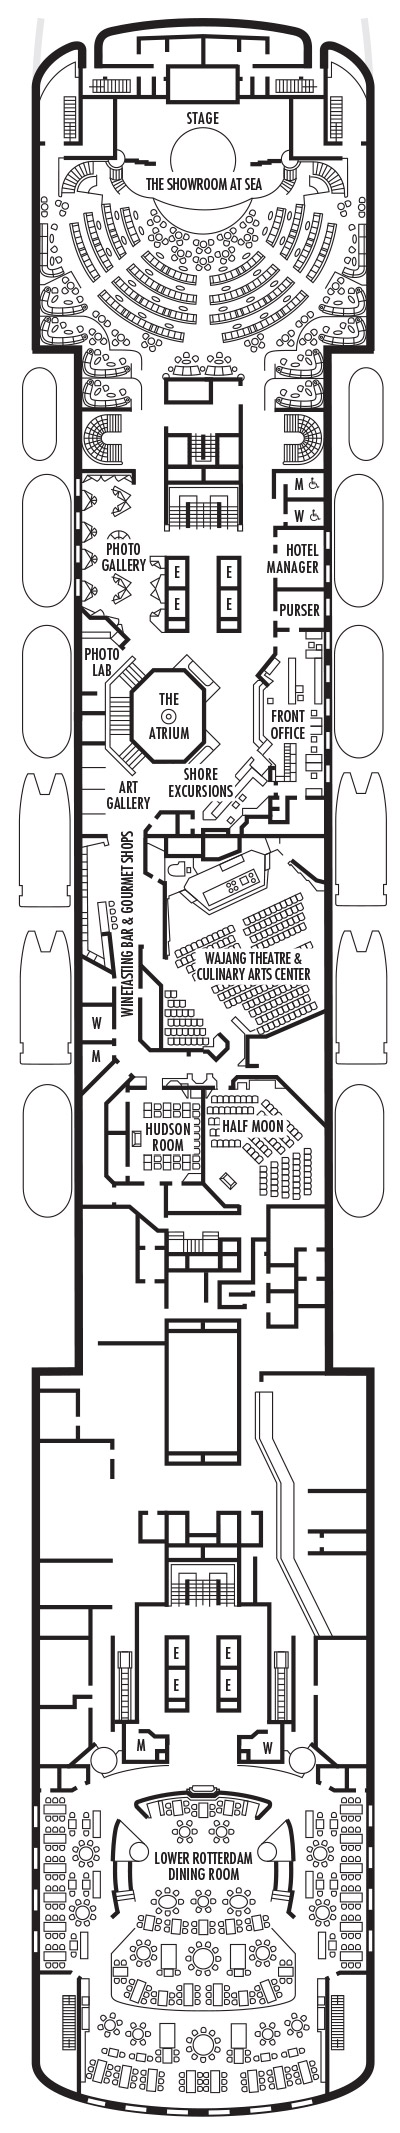 ms Veendam Deck Plans